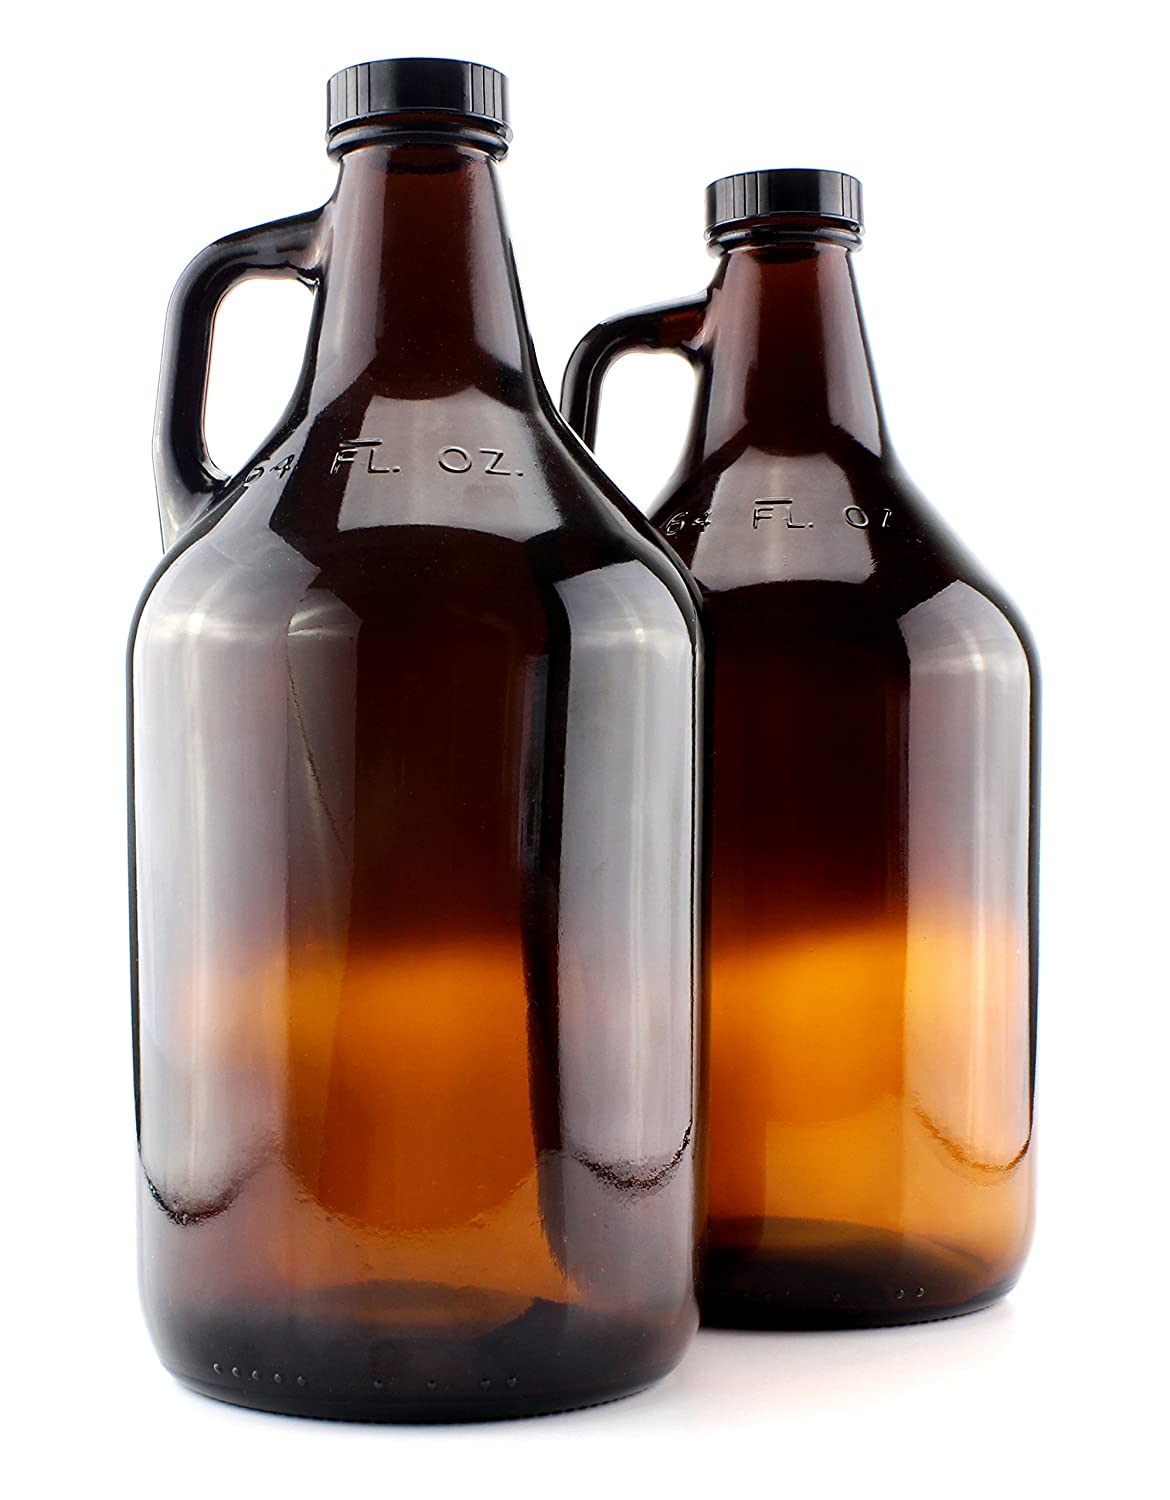 Amber Glass Growler Jugs 64-Ounce/Half Gallon (2-Pack) w/Black Phenolic Lids, Great for Kombucha, Home Brew, Distilled Water, Cider & More